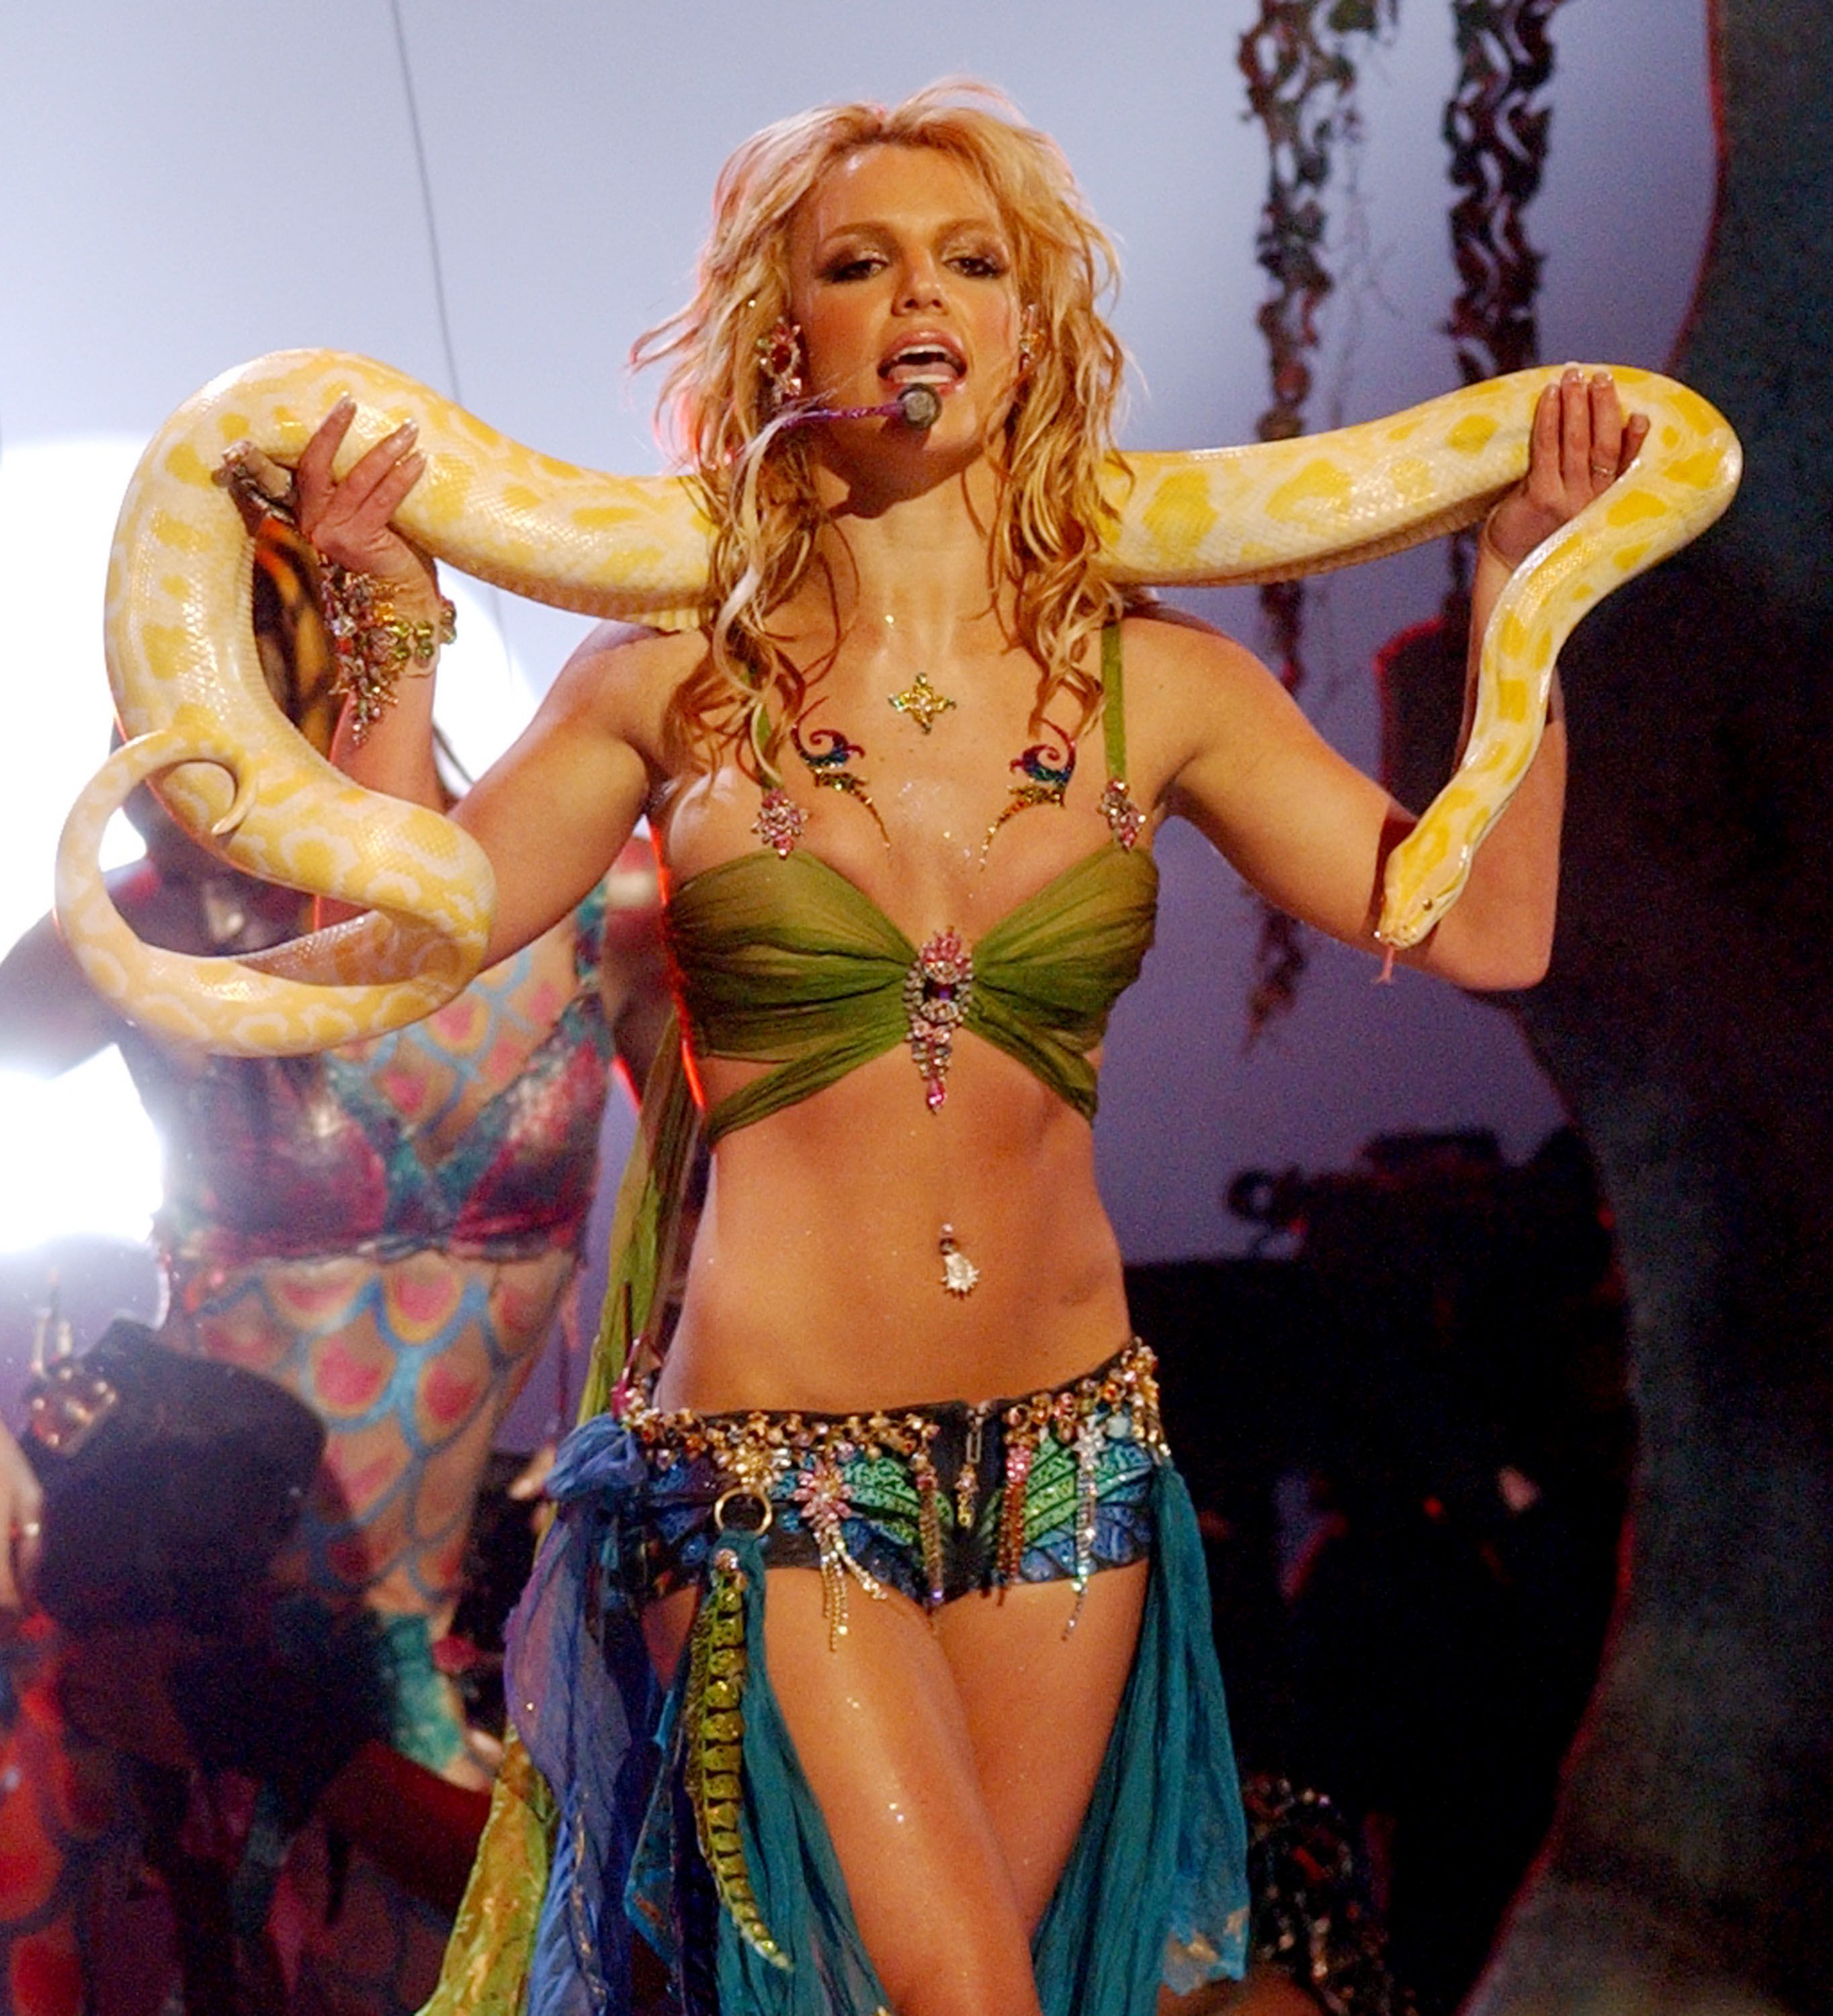 Britney Spears is an example of why we urgently need to protect women's rights